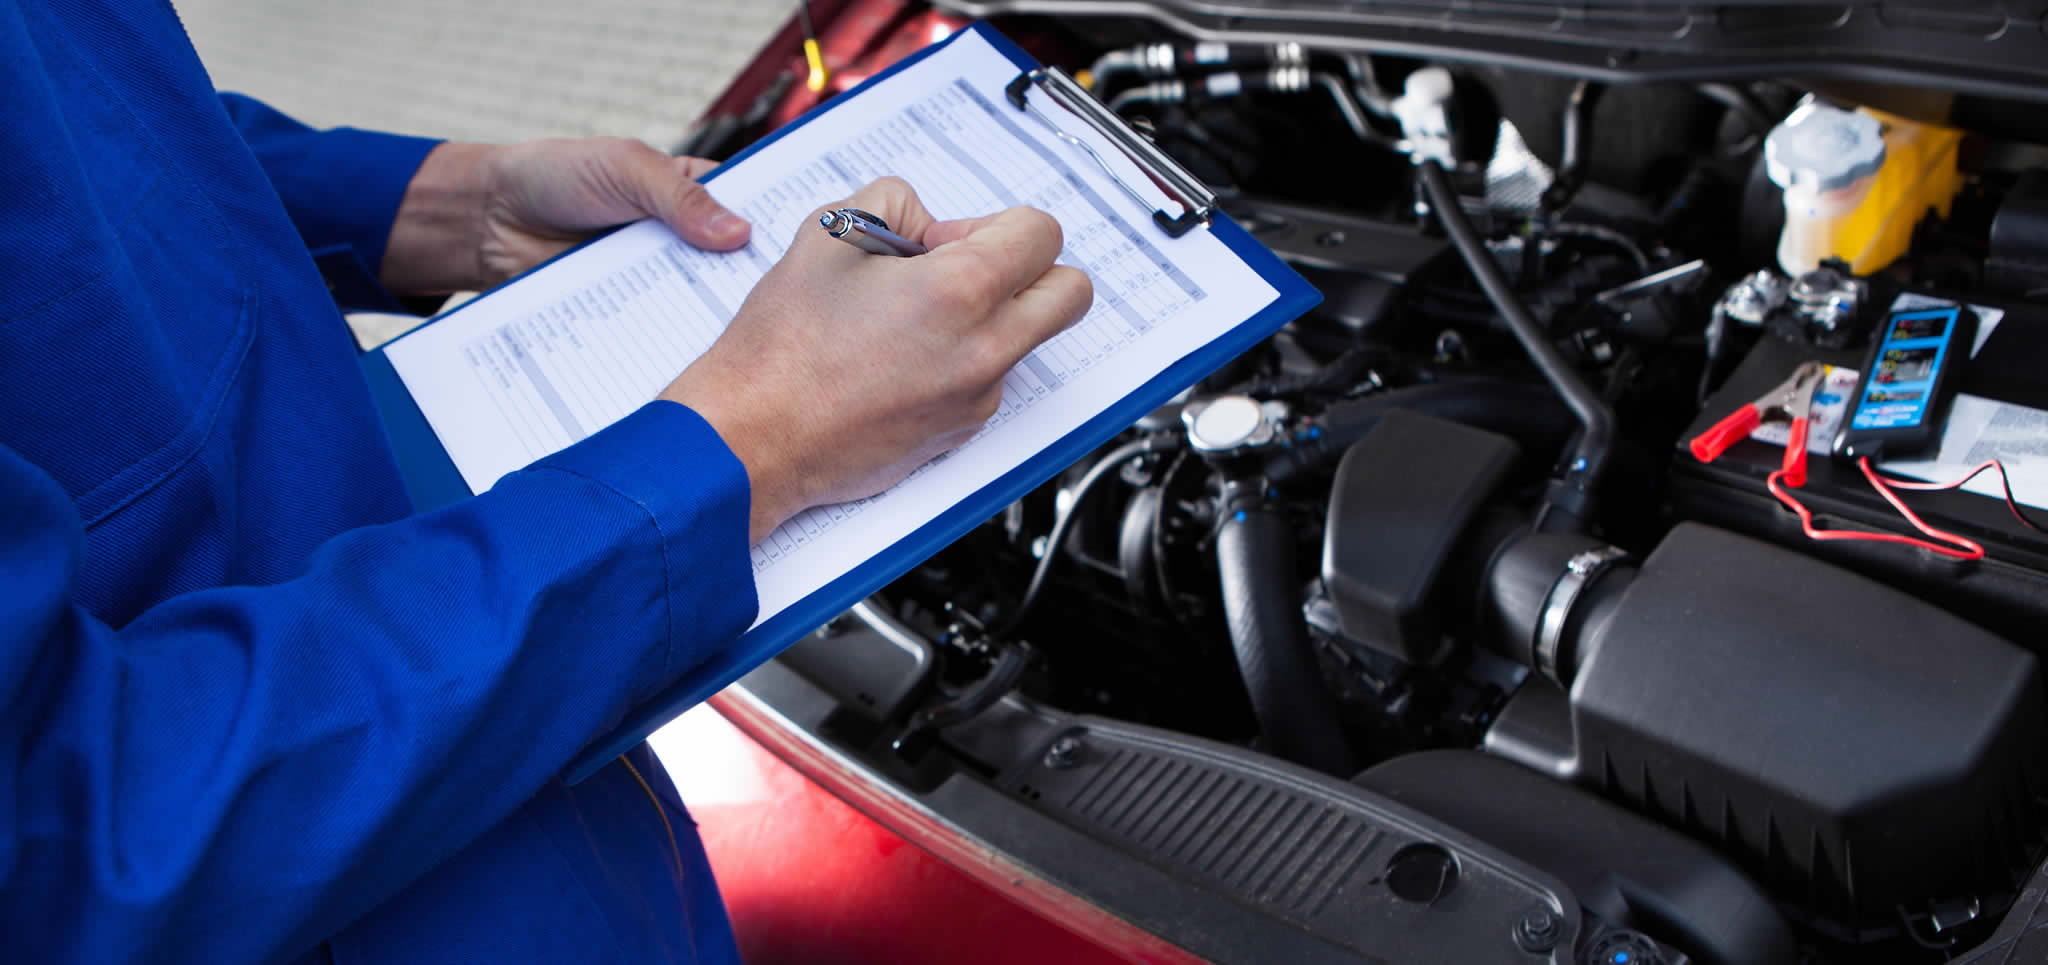 Full Service Automotive Repair and Diagnostics